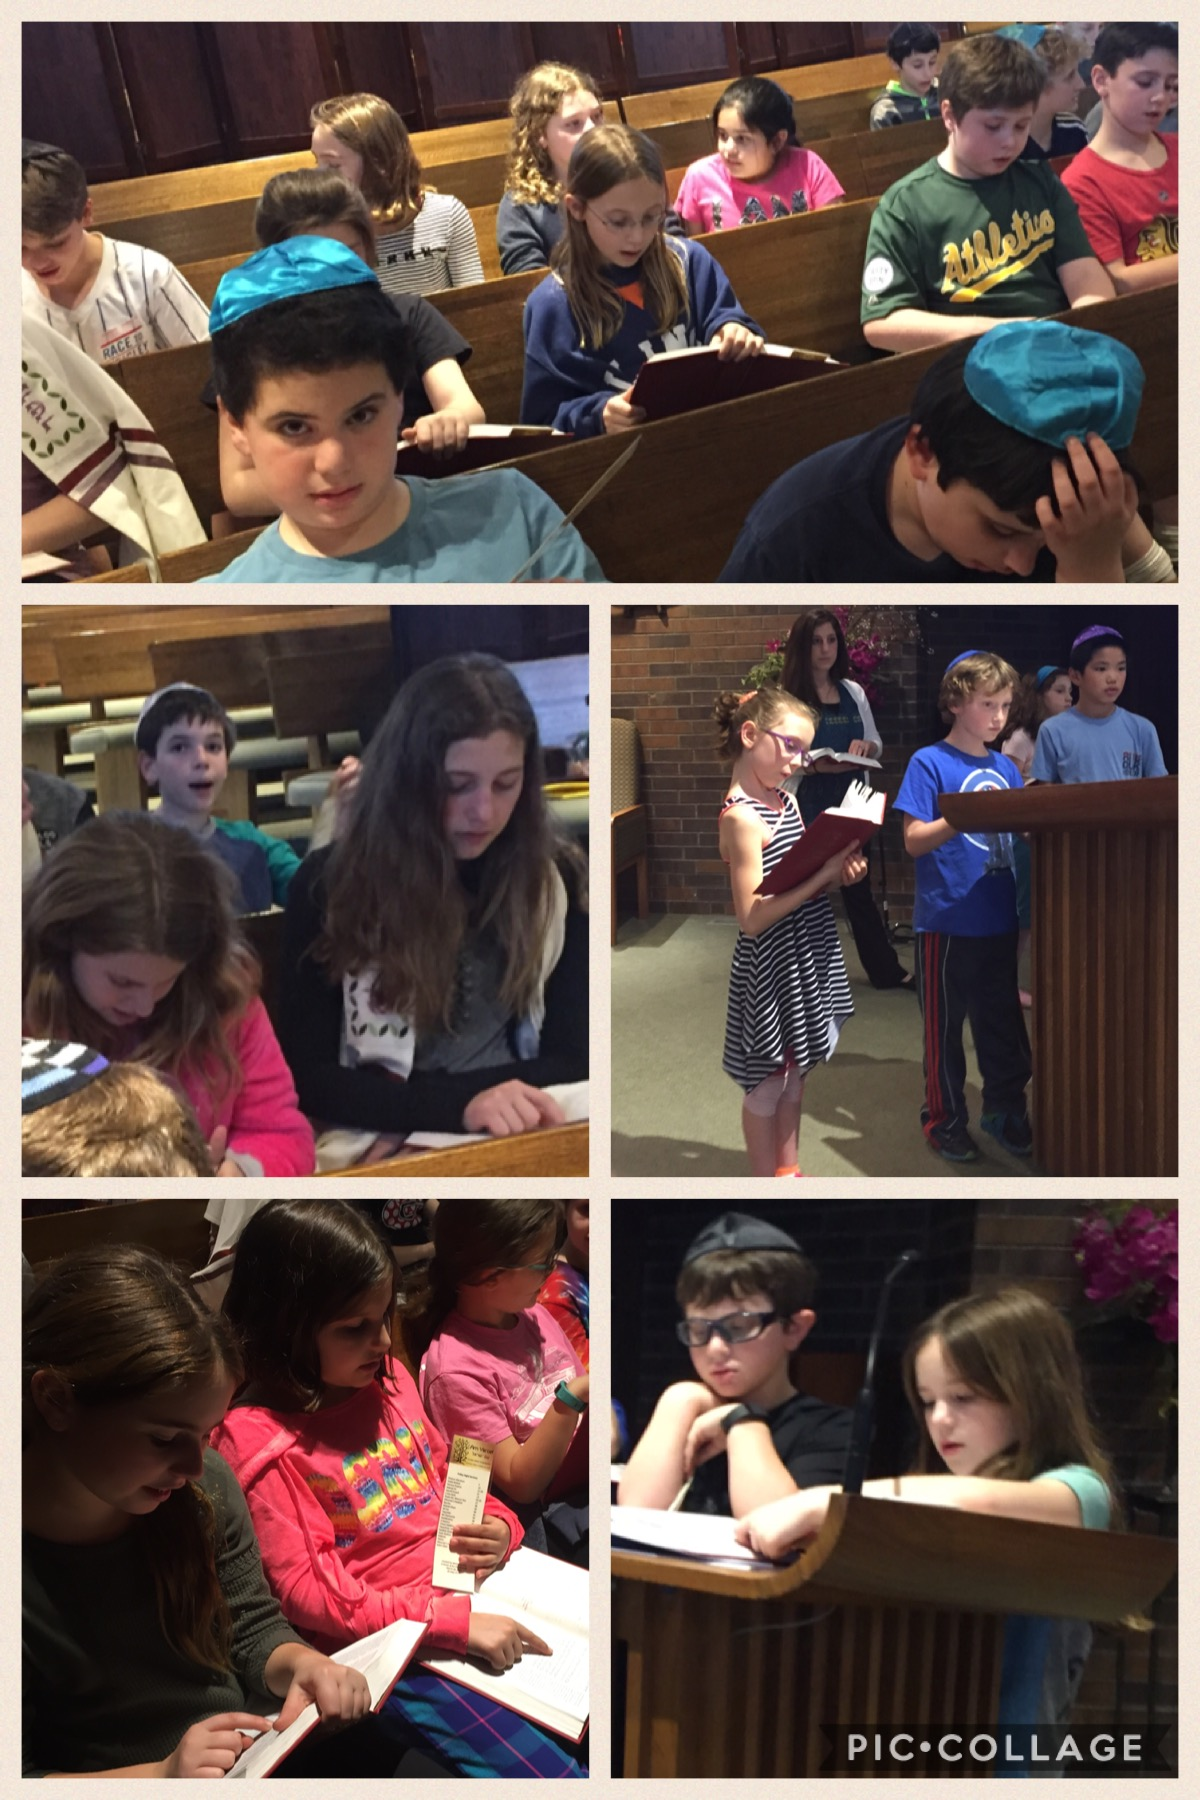 limmud-collage-2-24-17